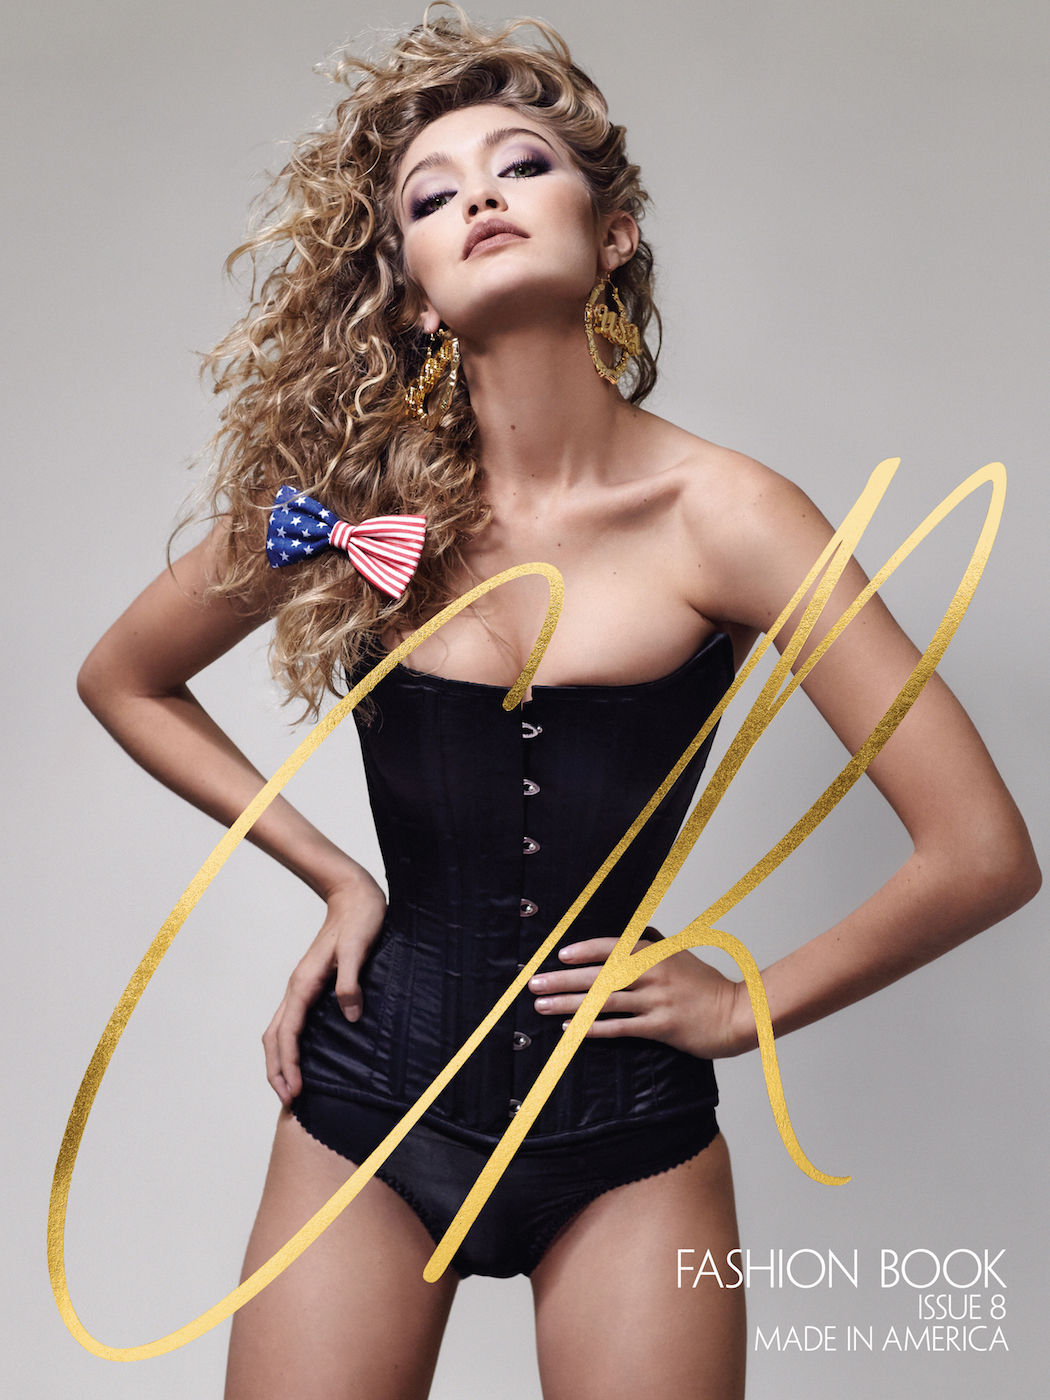 71a81b7d1b3a1 Gigi Hadid Named Iconic American Woman Like Sacagawea and Pam Anderson and  Wait